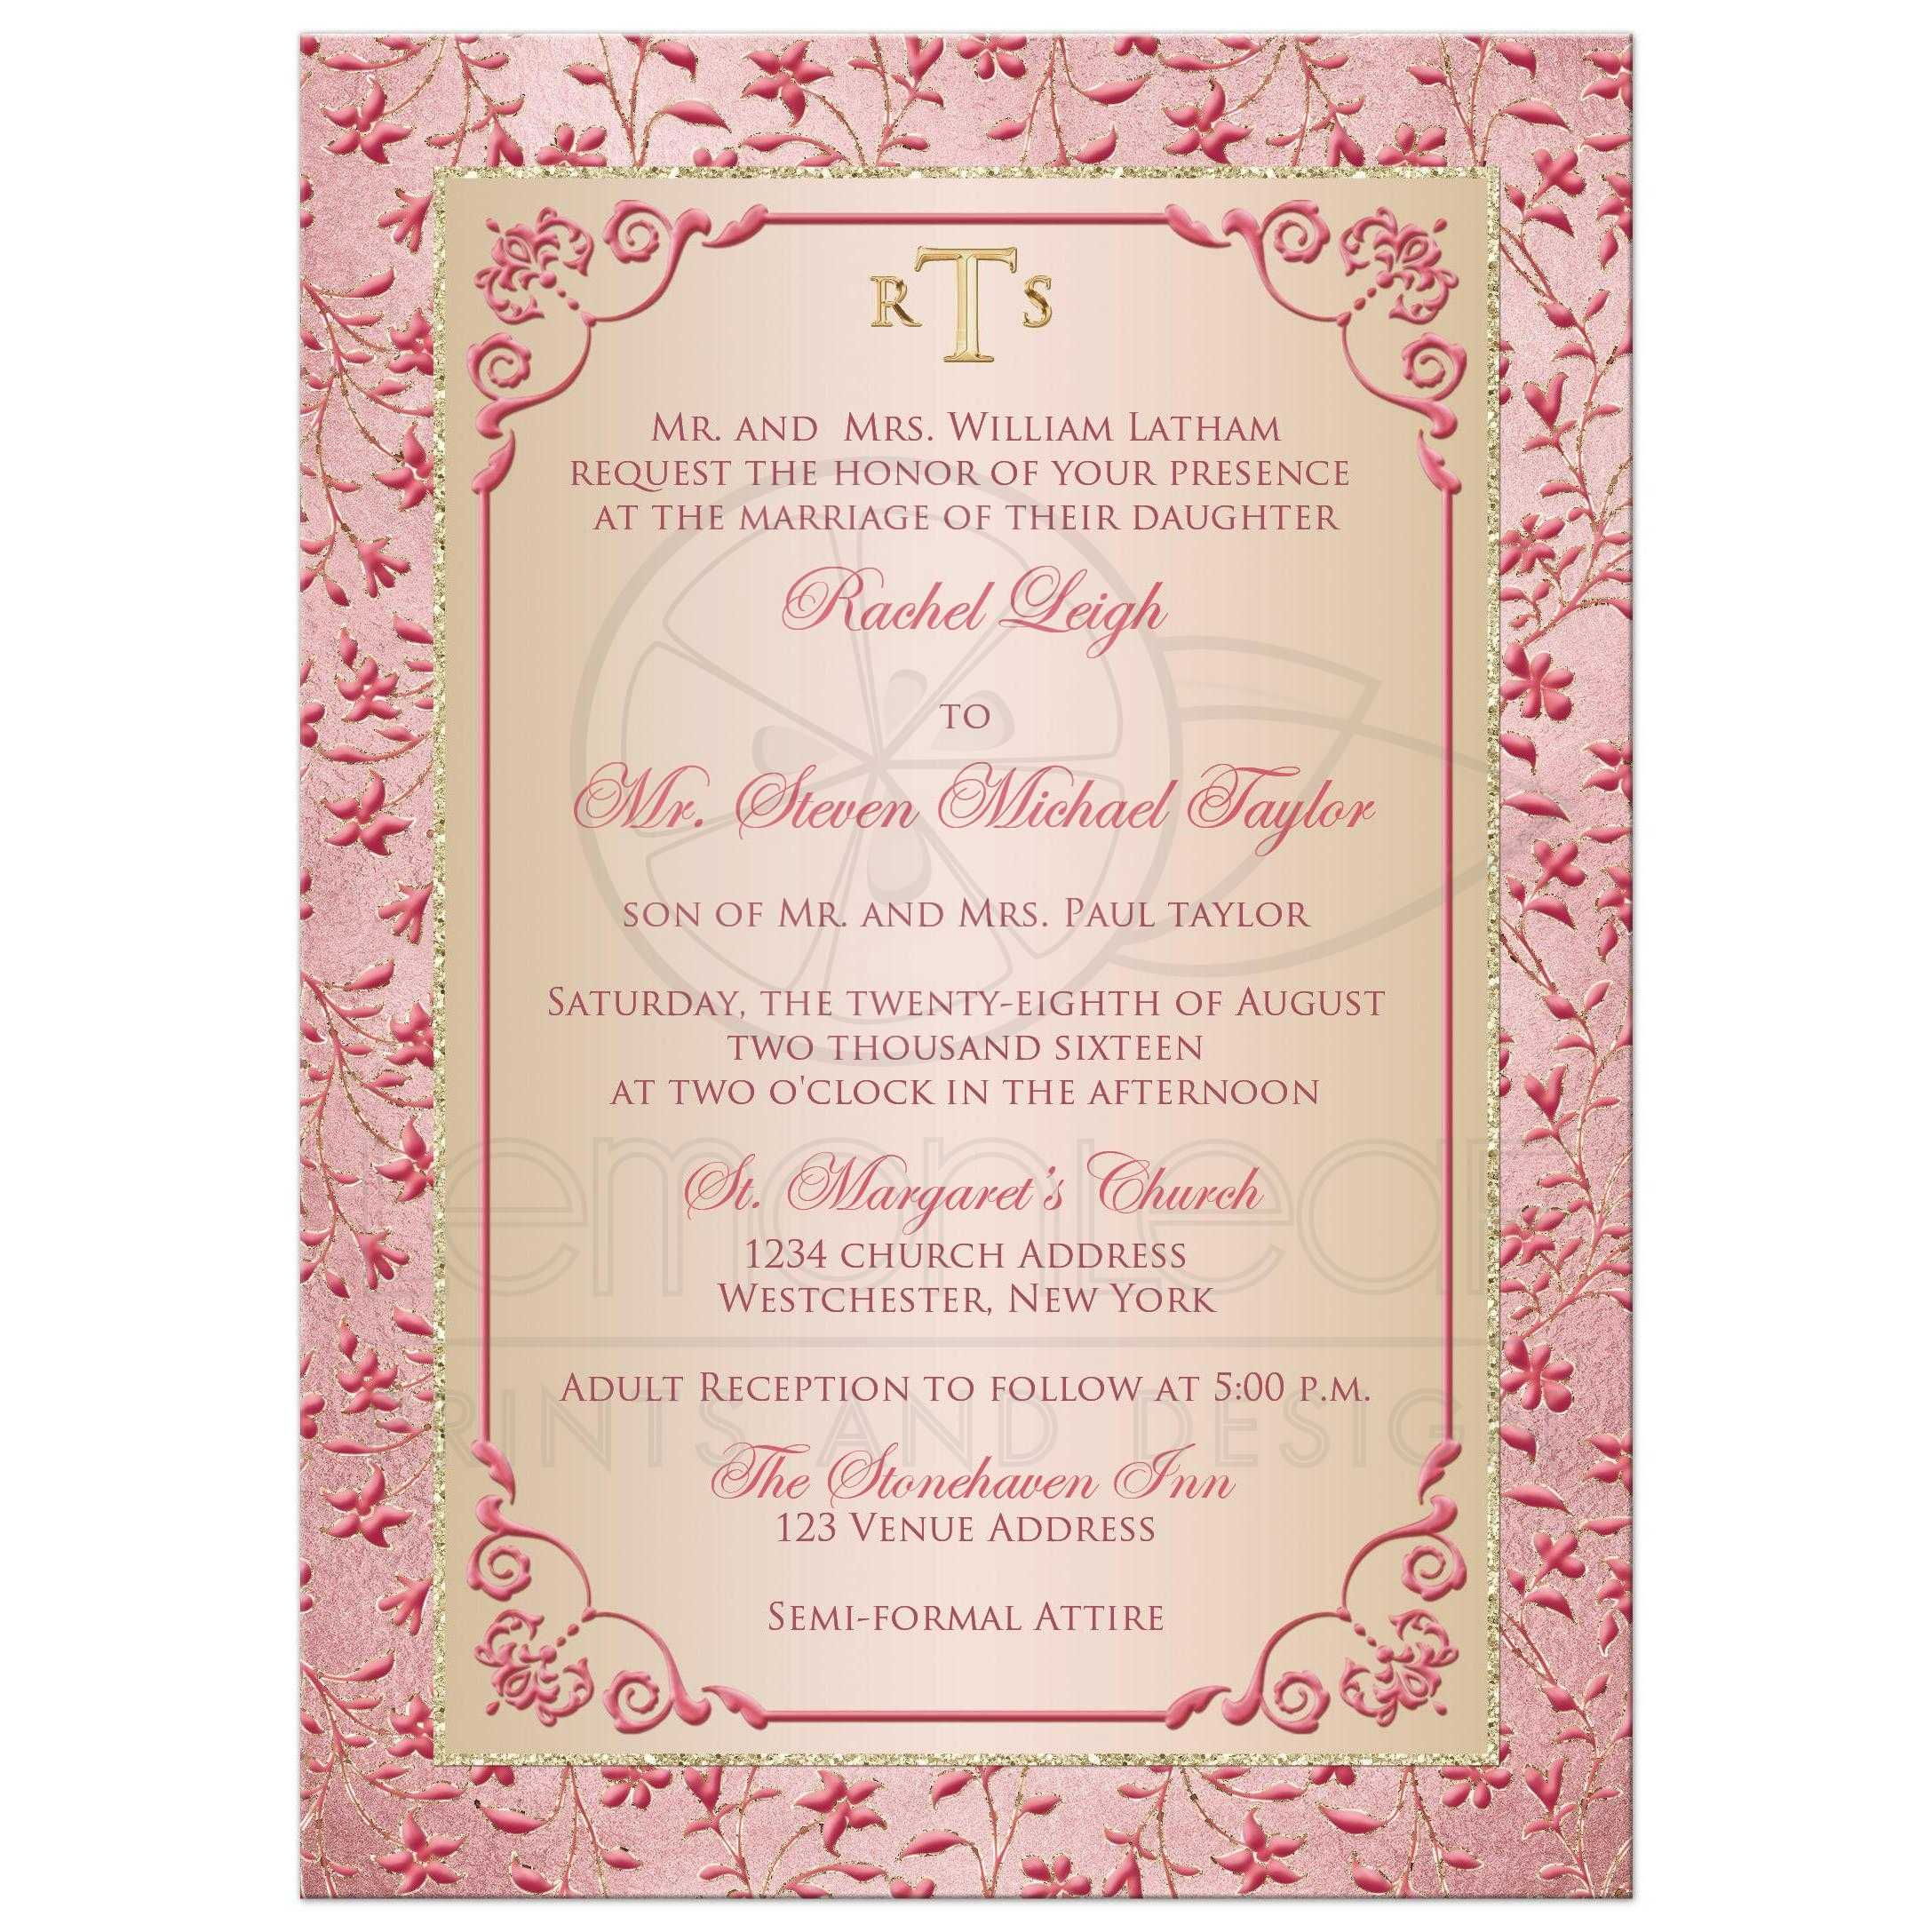 Fantastic Monogrammed Wedding Invitation | Blush Pink, Dusty Rose, Champagne  QT74